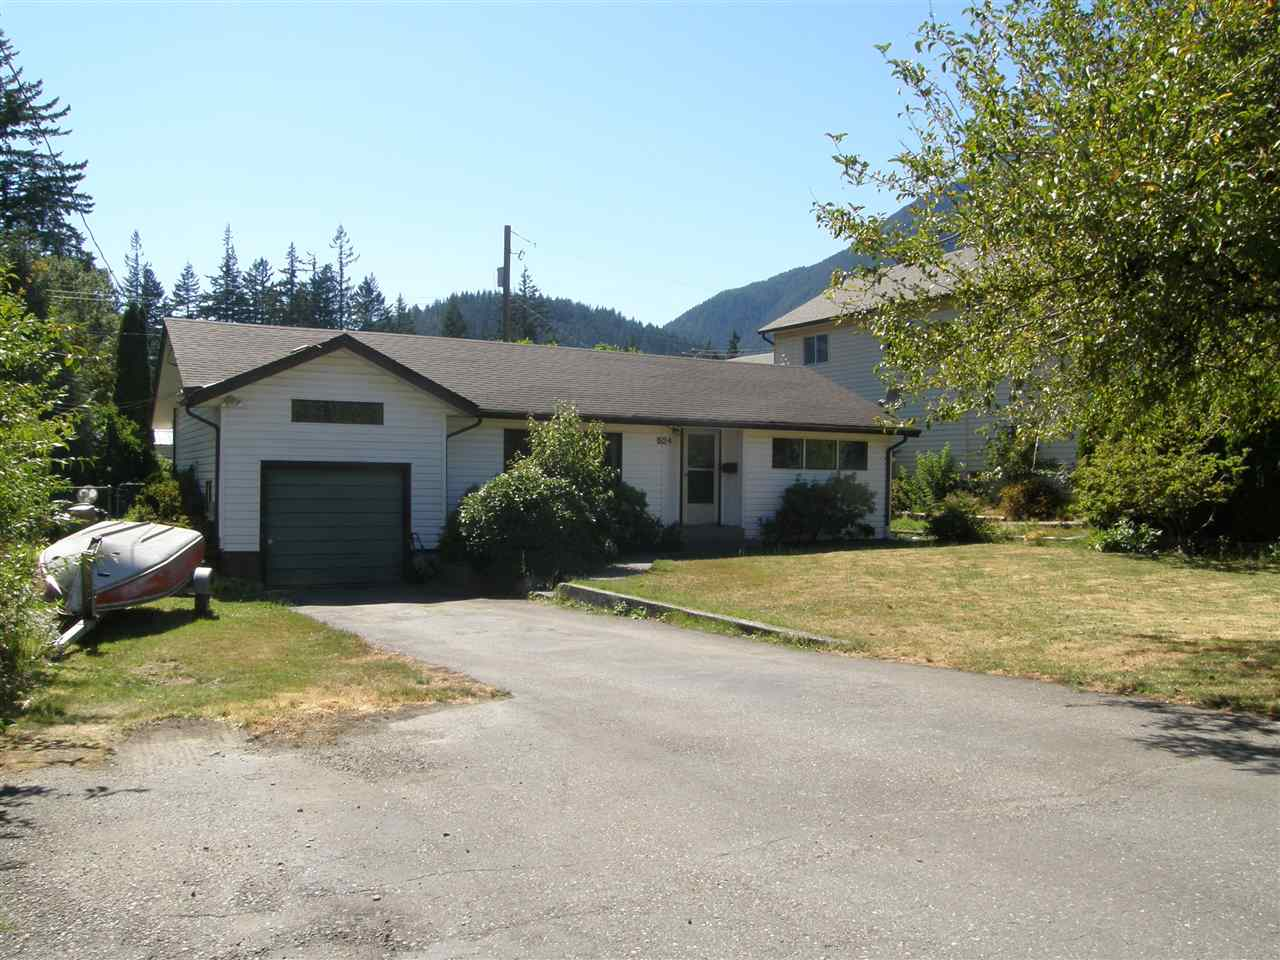 Main Photo: 524 3RD Avenue in Chilliwack: Hope Center House for sale (Hope)  : MLS®# R2057787